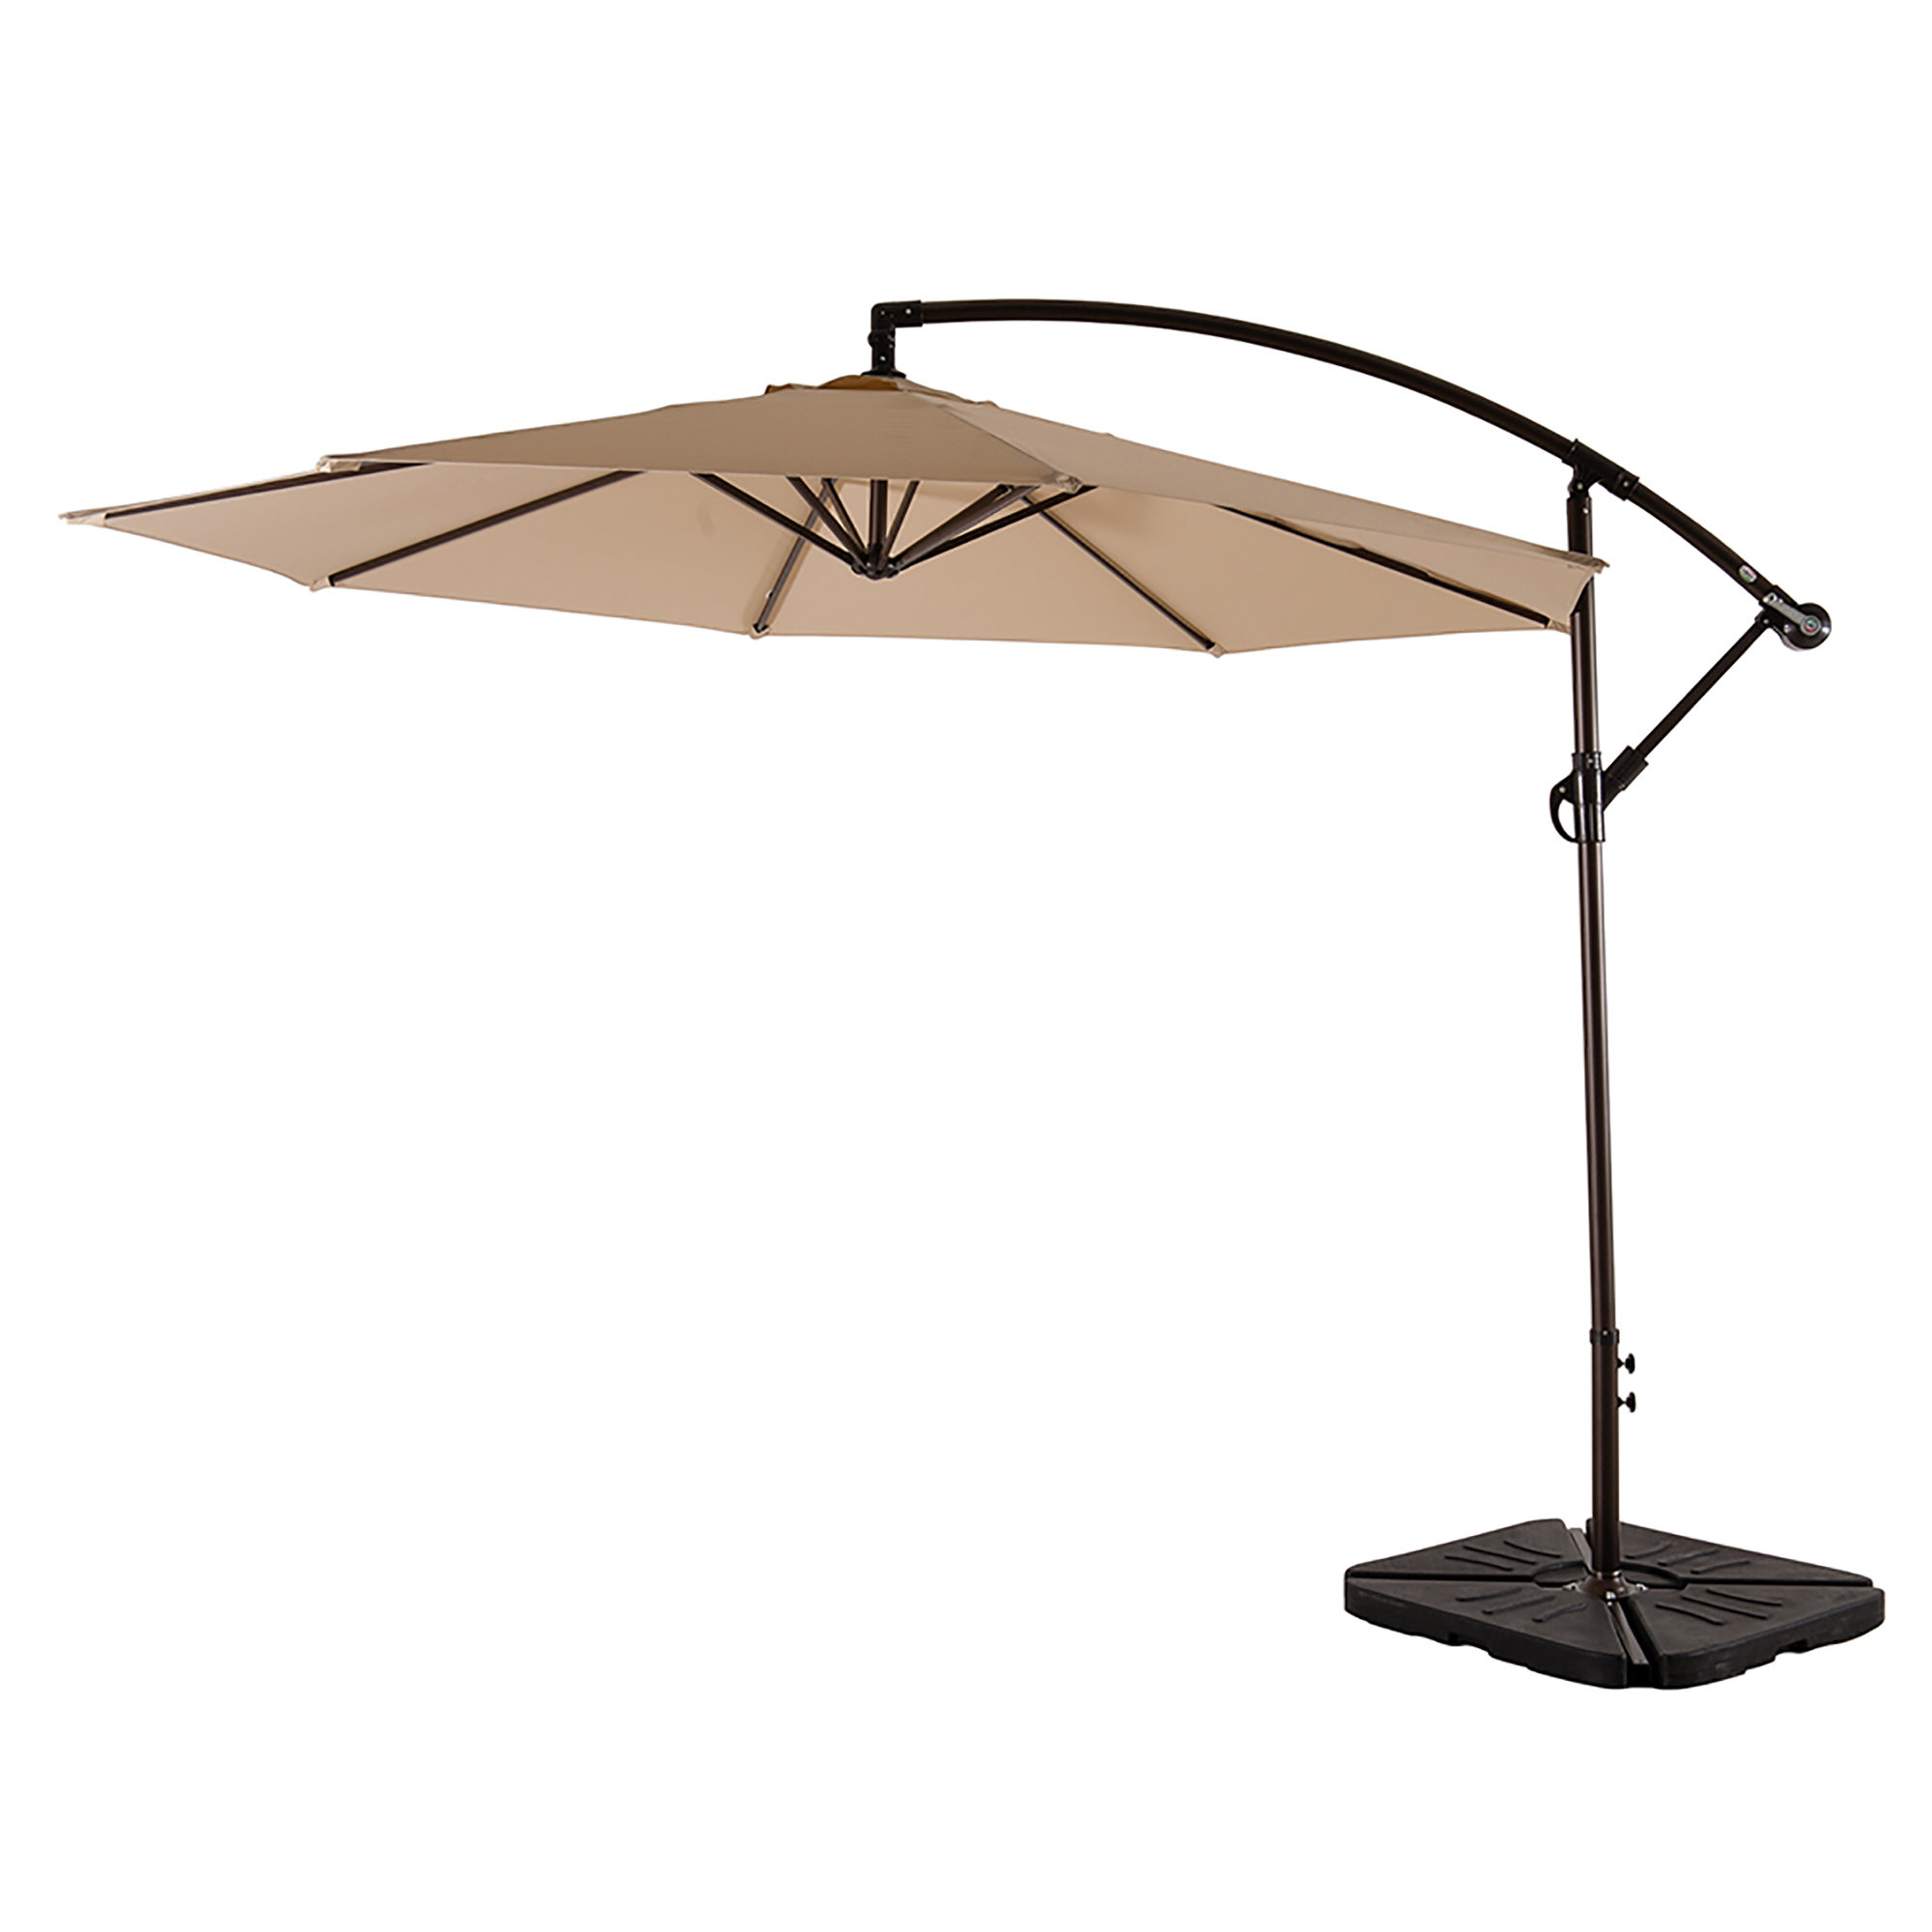 Kizzie Market 10' Cantilever Umbrella In Popular Tottenham Patio Hanging Offset Cantilever Umbrellas (View 5 of 20)